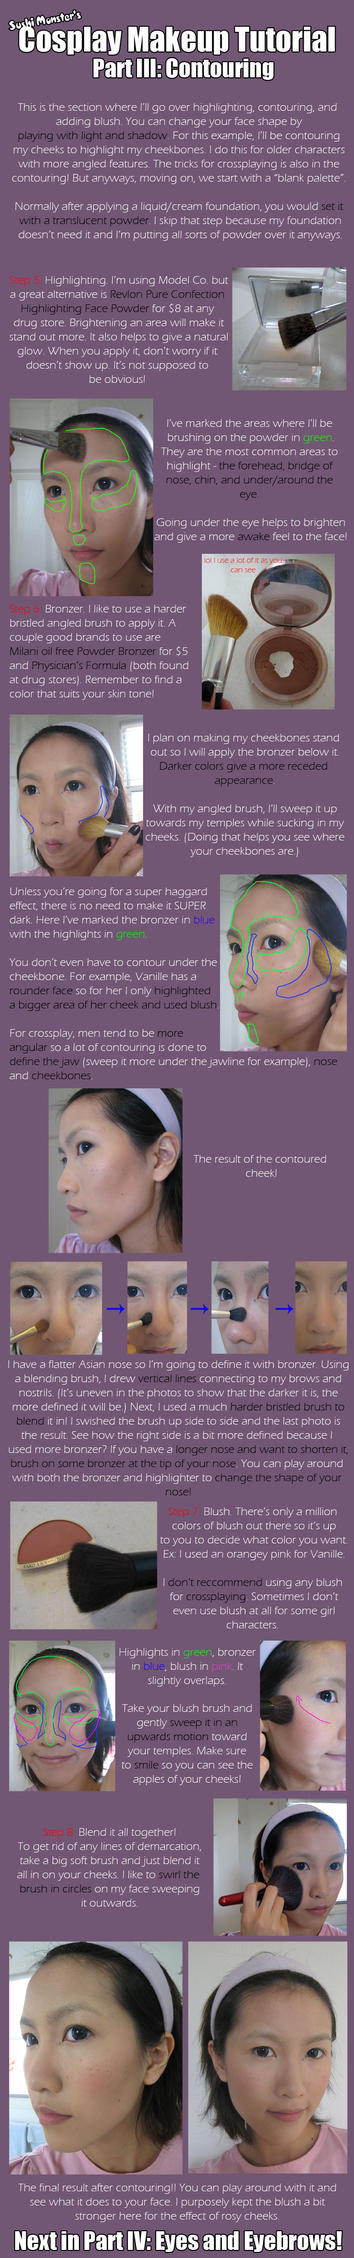 Cos Makeup Tutorial Part III by the-sushi-monster